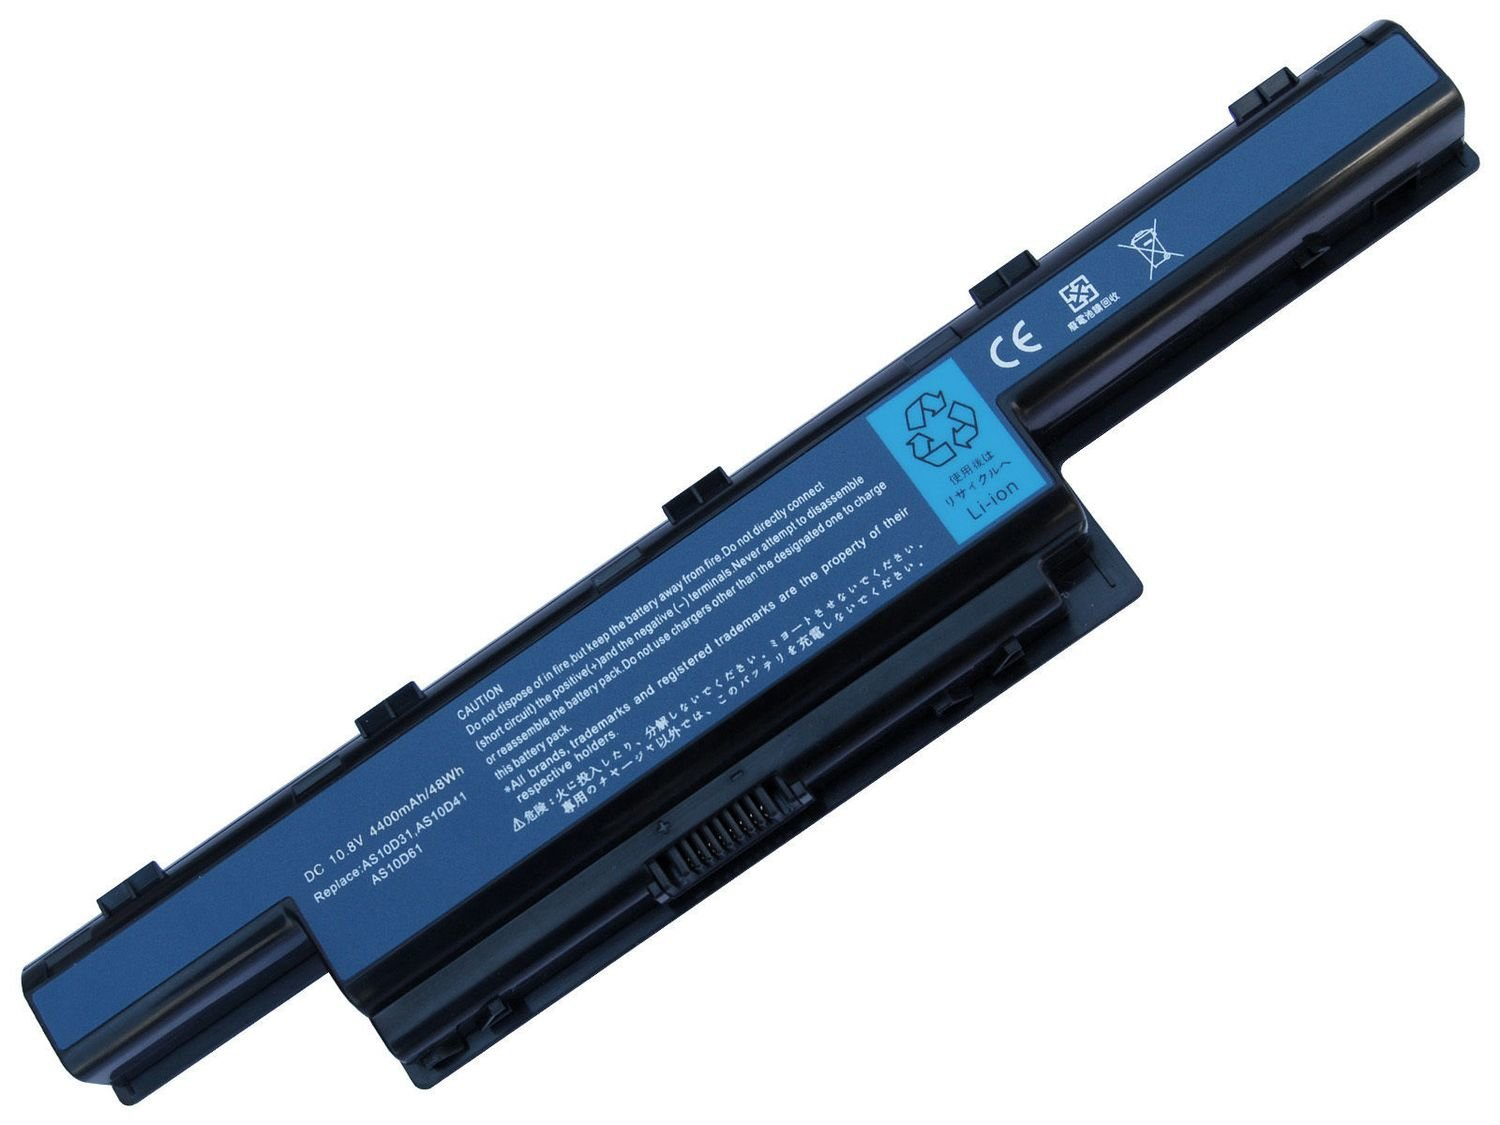 Acer Travelmate 8472TG TM5740 TM5742 compatible laptop battery